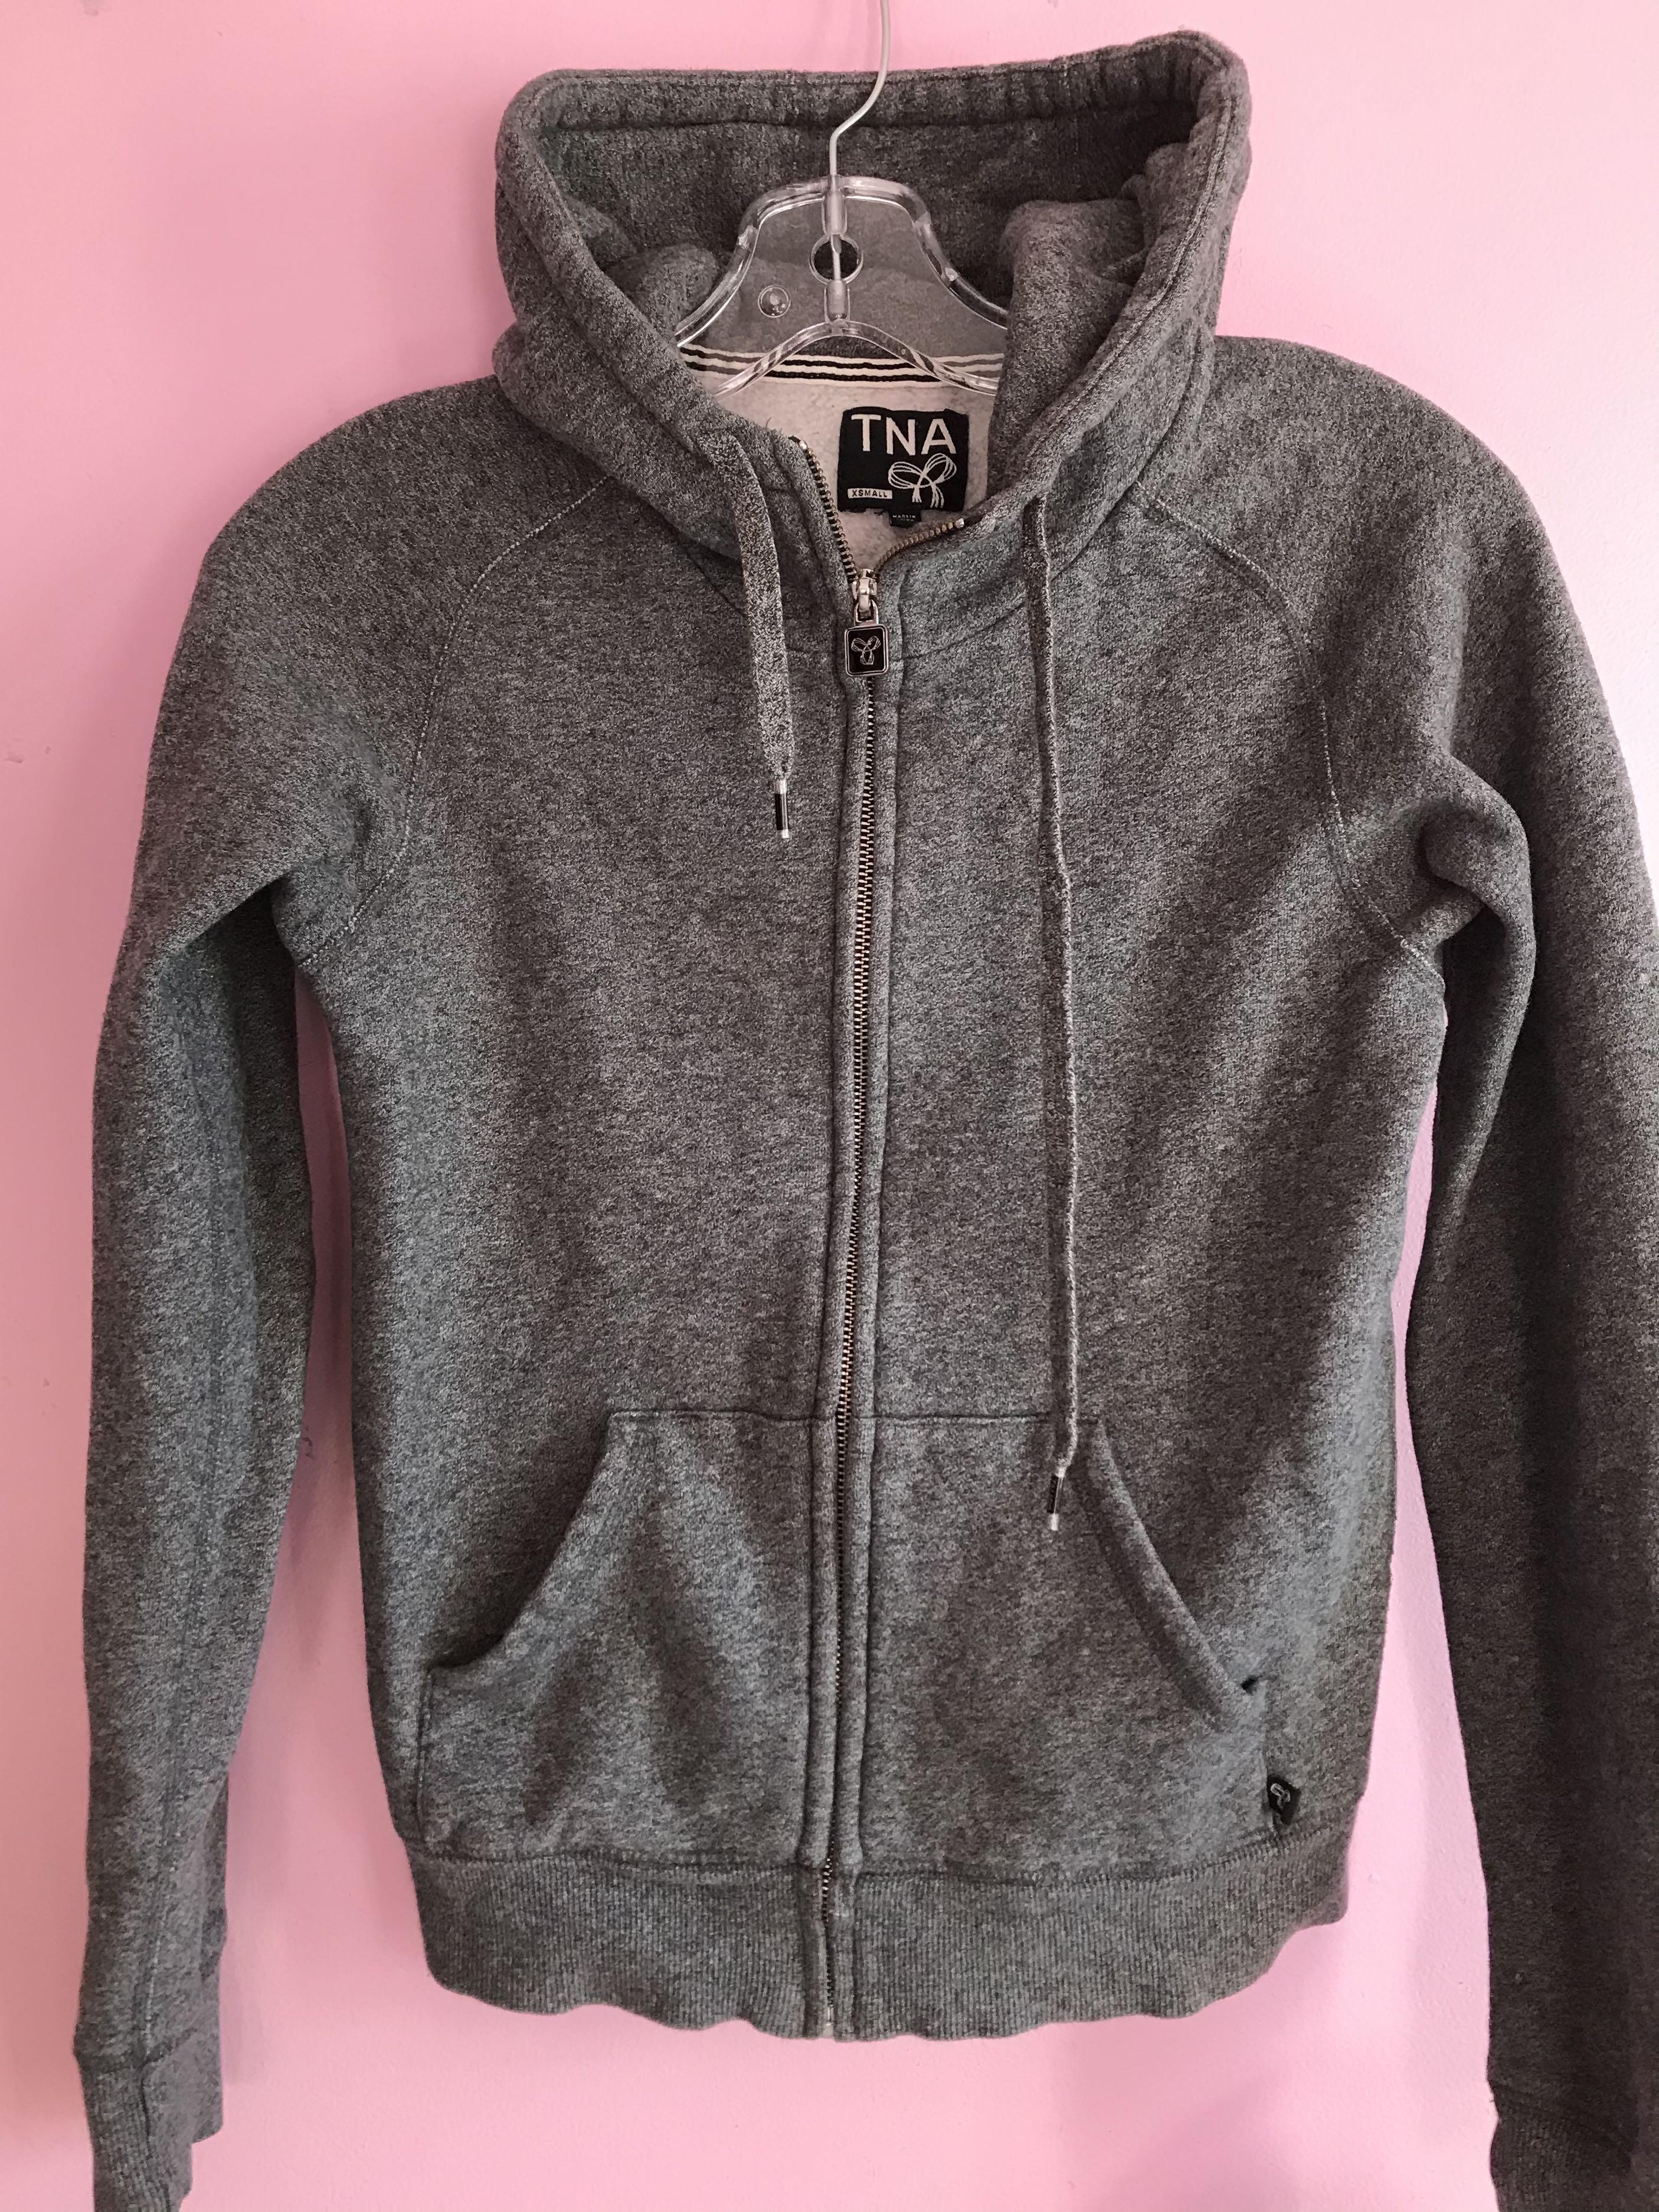 TNA grey zip up hoodie